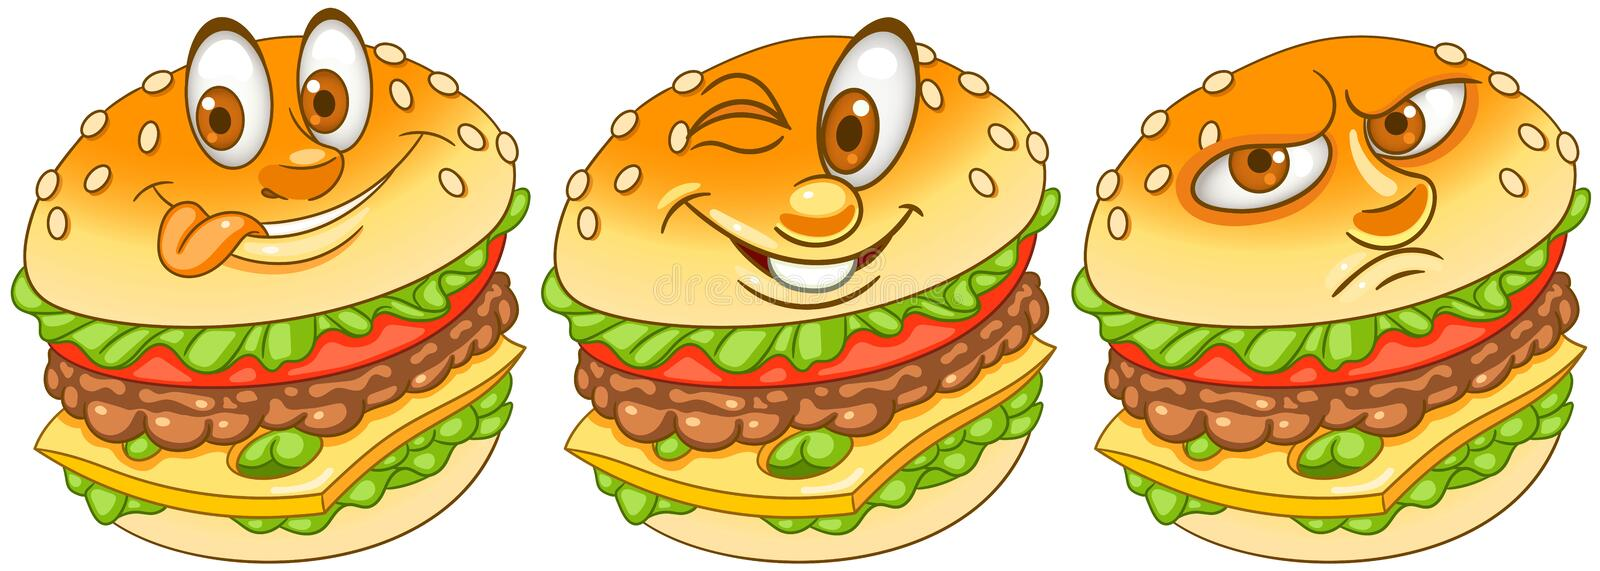 Burger. Hamburger. Cheeseburger. Fast Food concept royalty free stock image